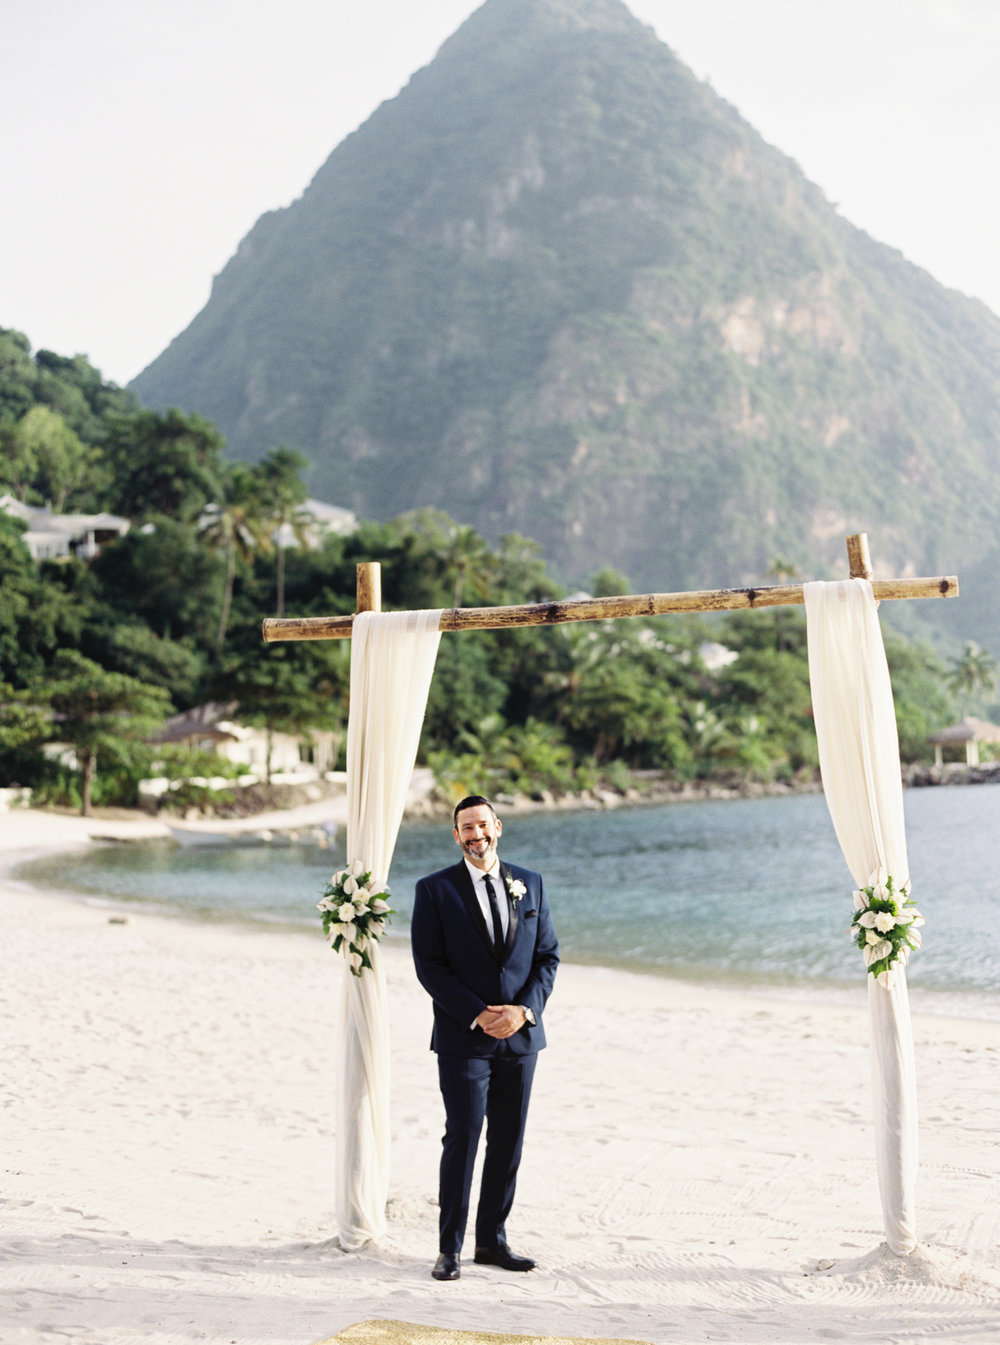 070Delmary's & Daniel : ELOPEMENT : ST. LUCIA : CARIBBEAN : PHOTO & VIDEO : DESTINATION : OUTLIVE CREATIVE : 2016 .jpg